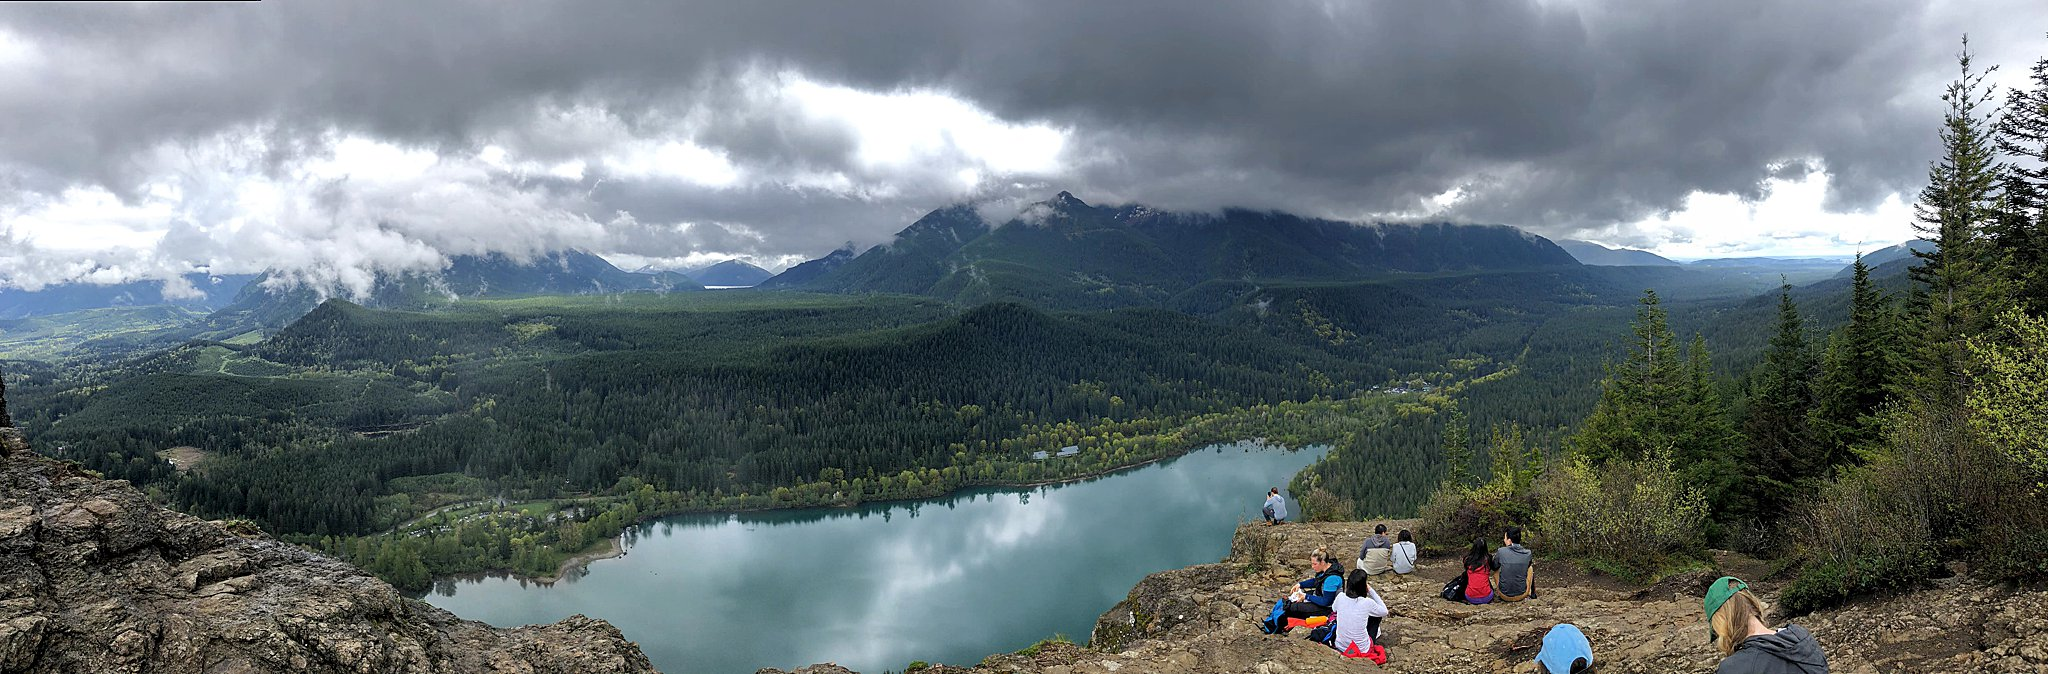 rattlesnake ledge, seattle hike, north bend, washington